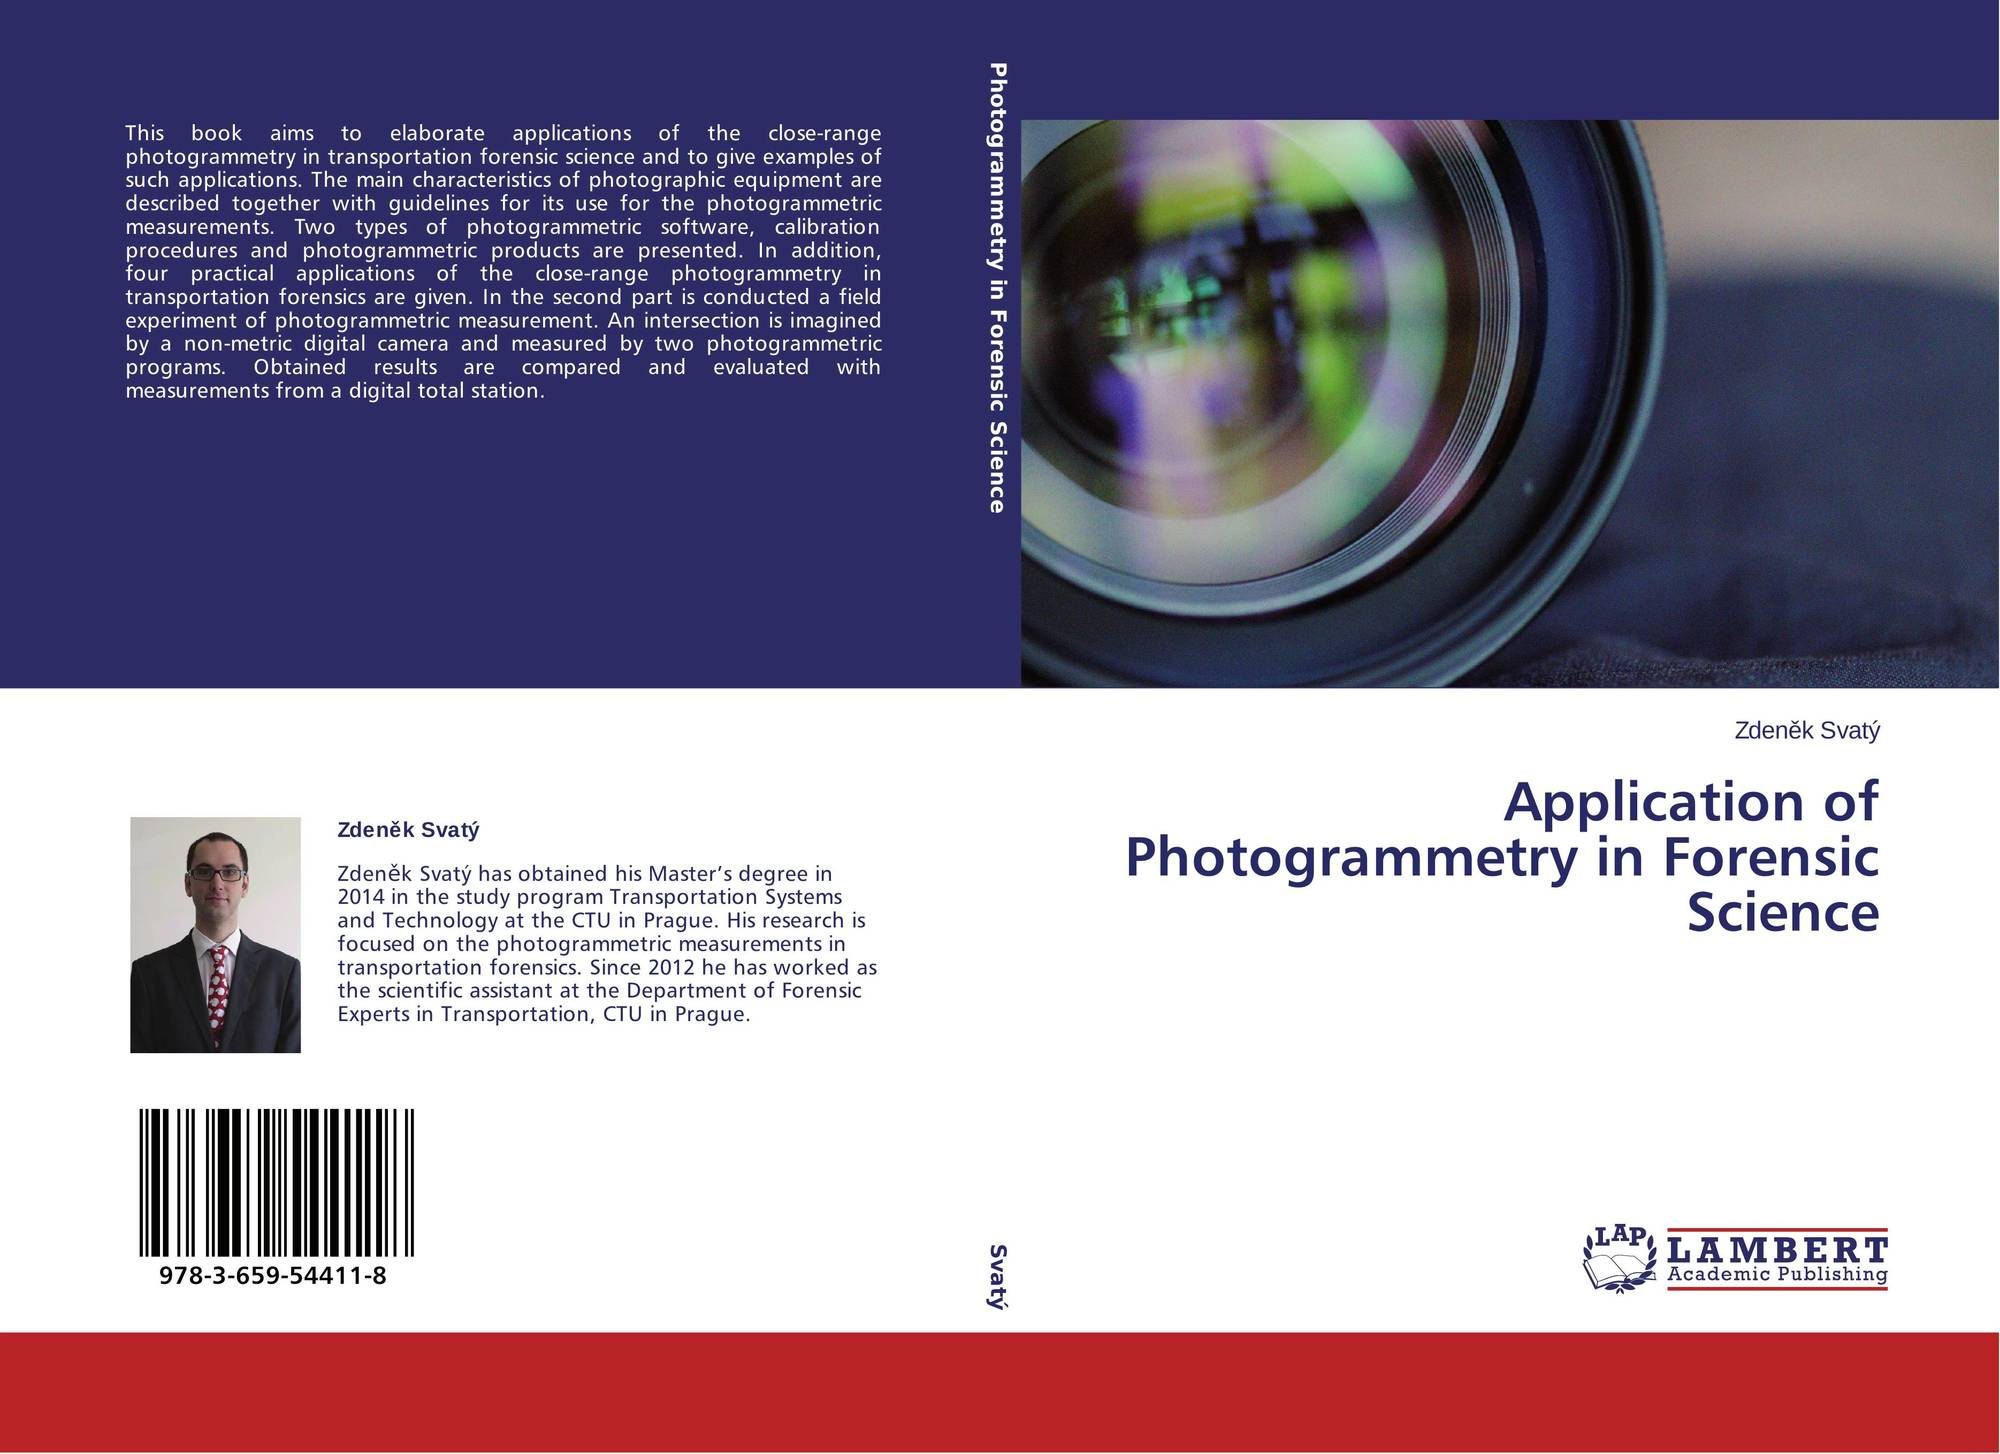 Application of Photogrammetry in Forensic Science, 978-3-659